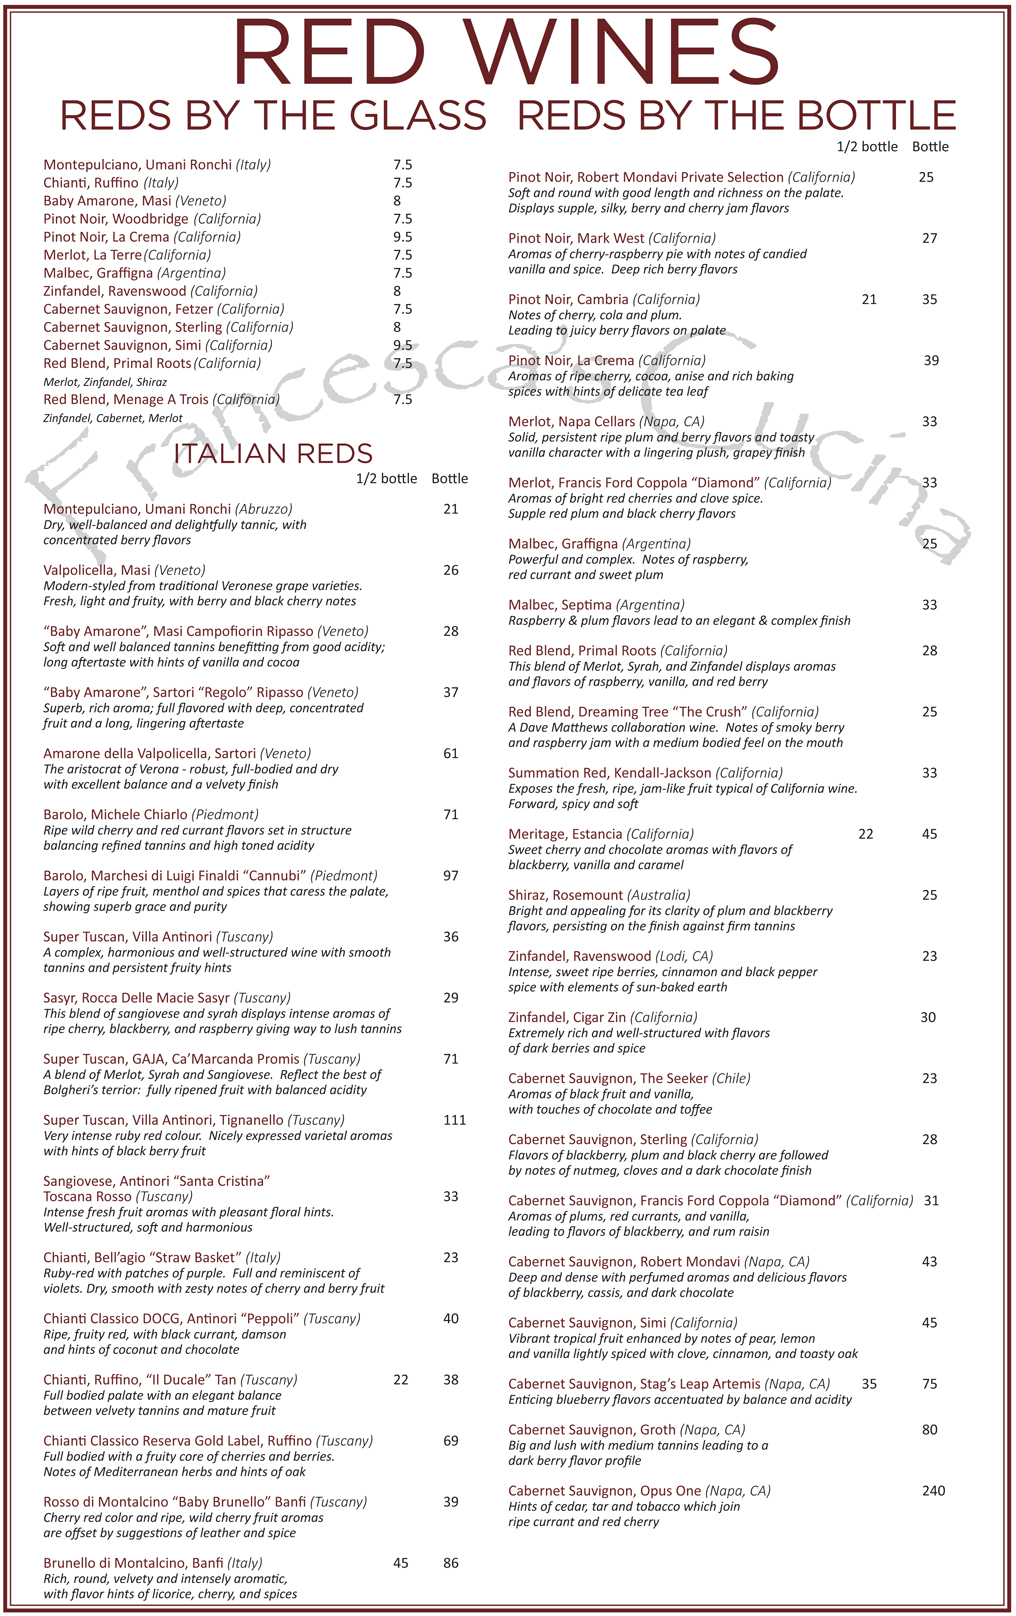 Cucina And Co Wine List Wines – Red | Francesca's Cucina